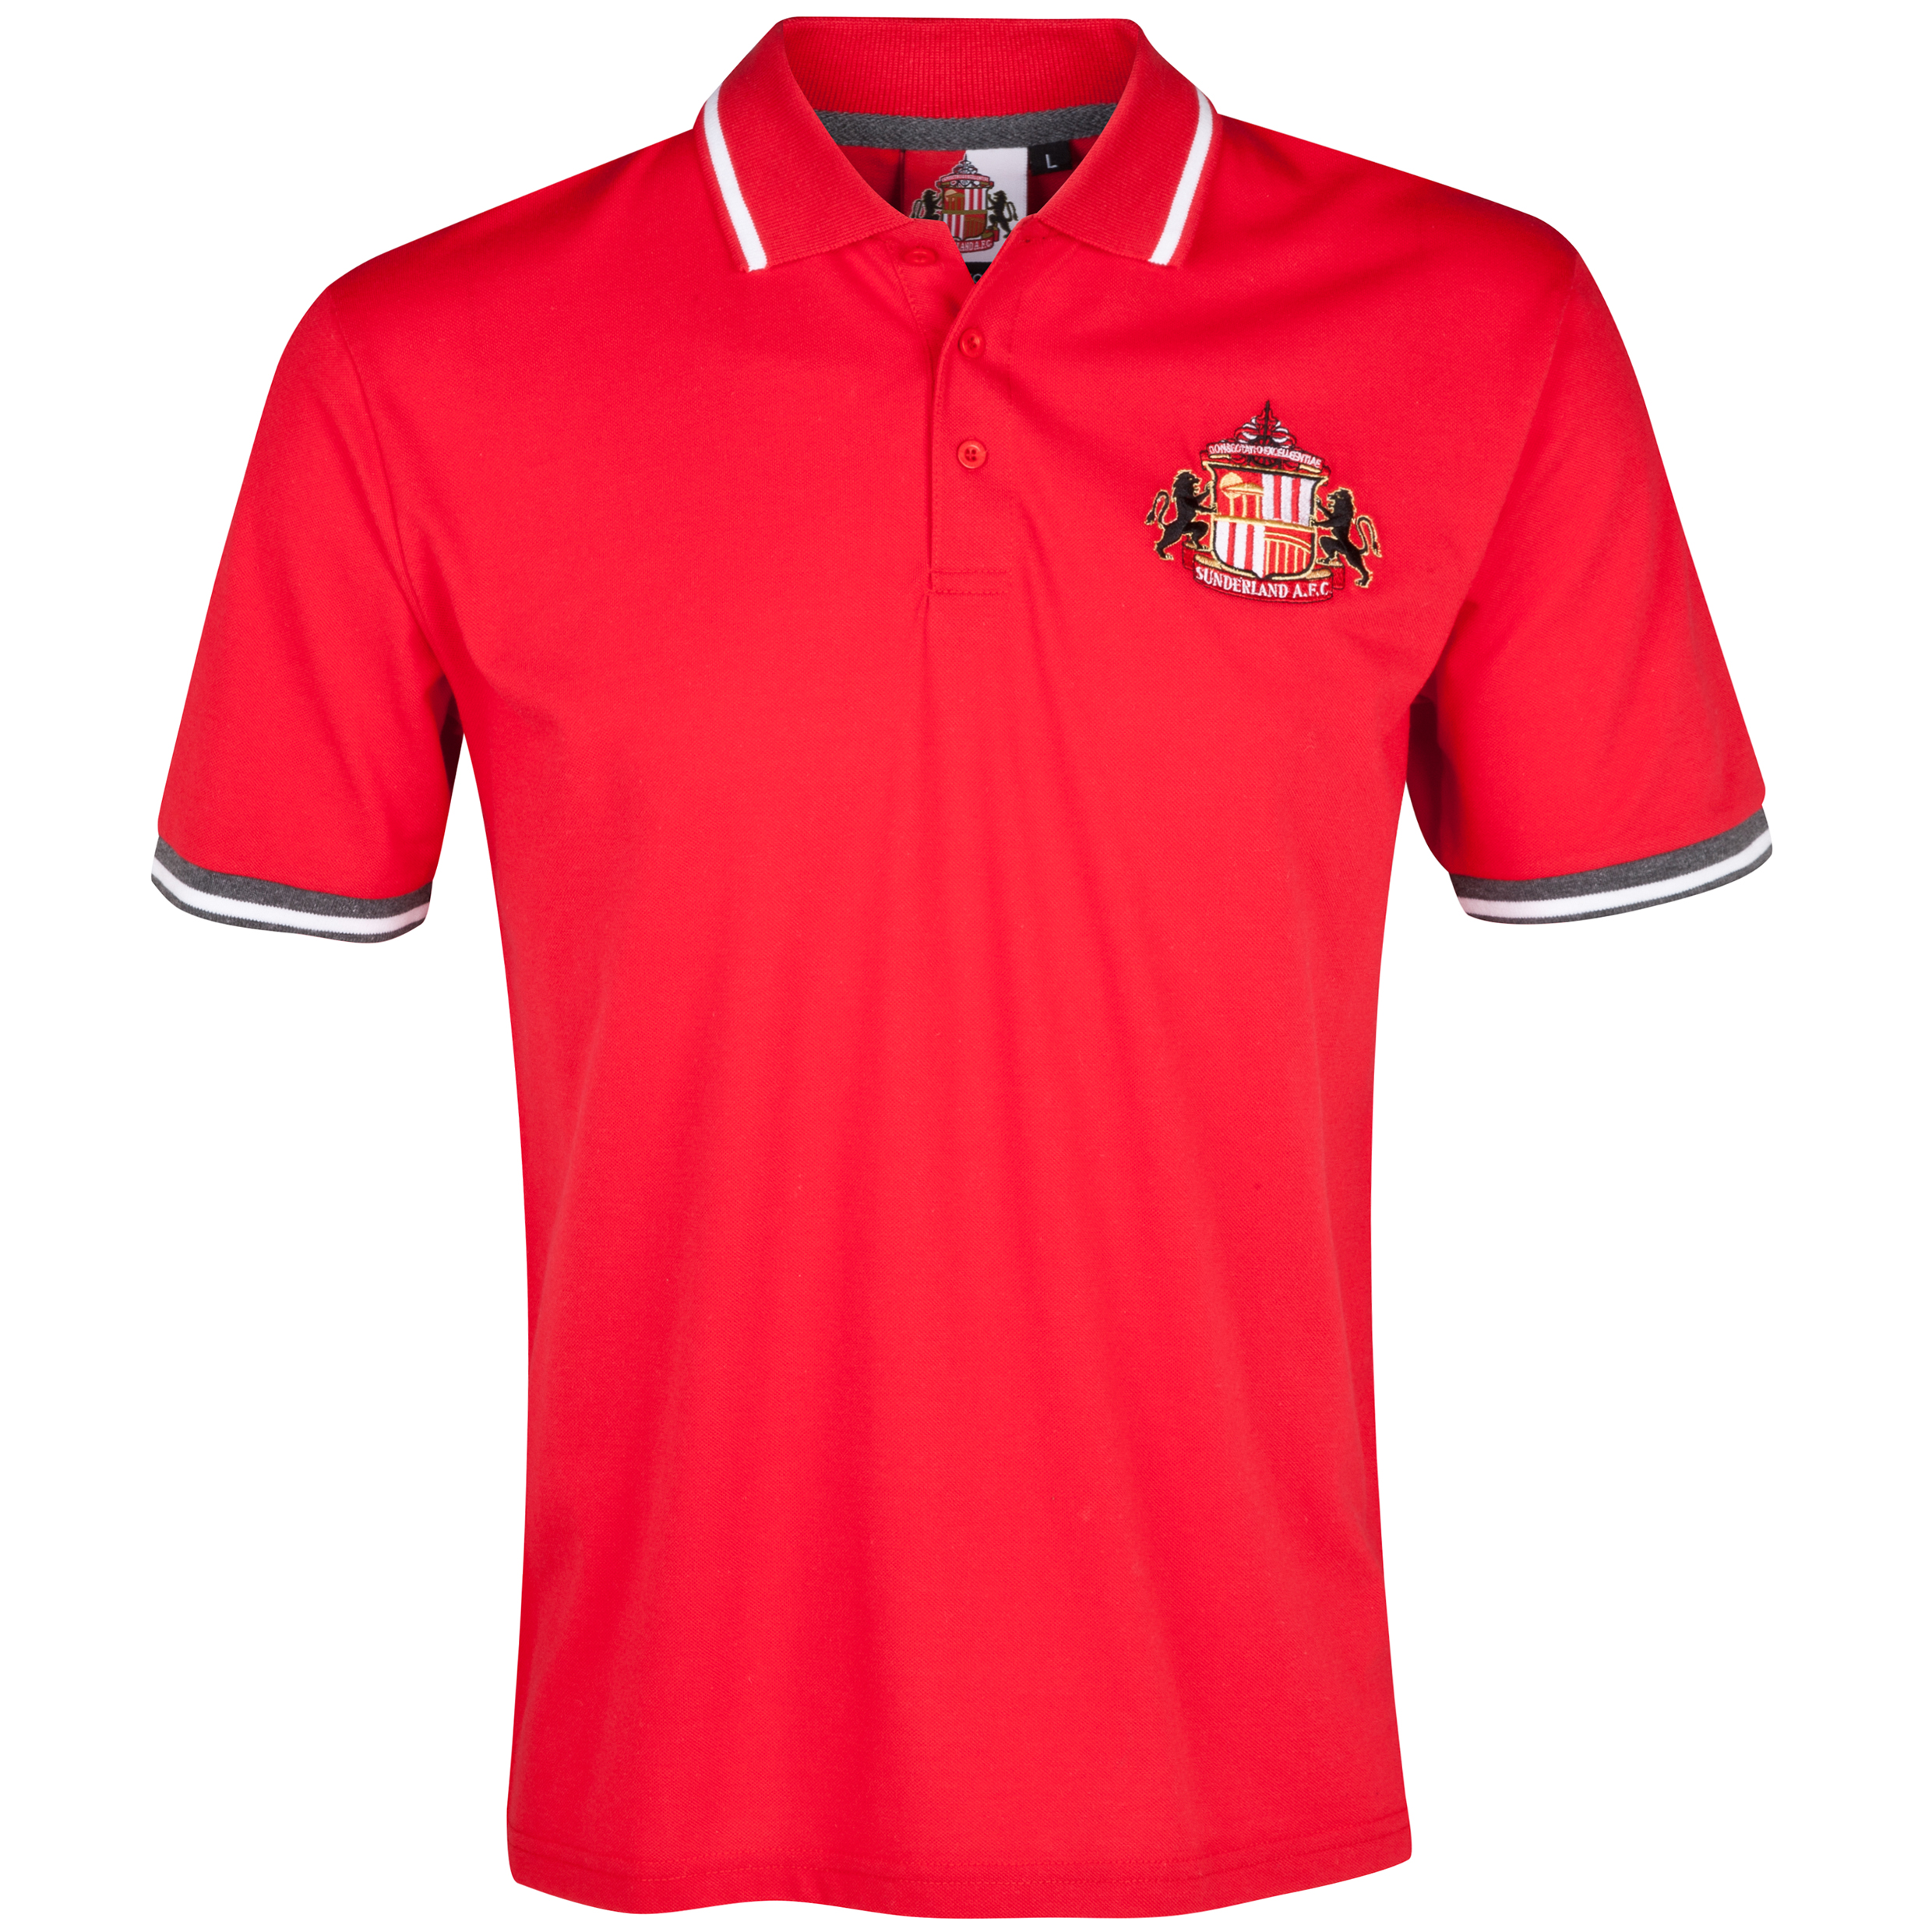 Sunderland Essentials Grounds Polo Shirt - Infant Boys Red